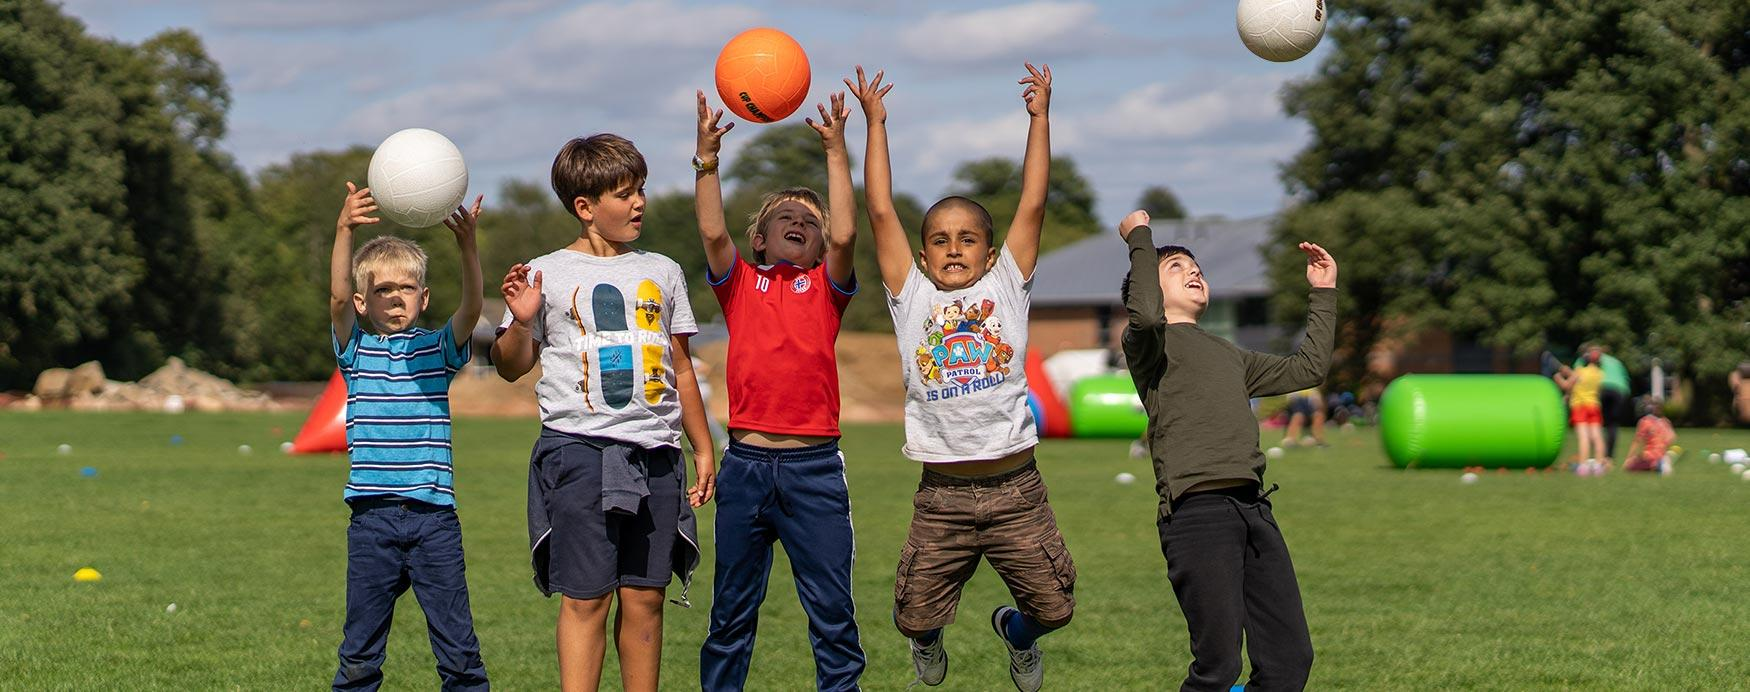 Summer holiday camps for children